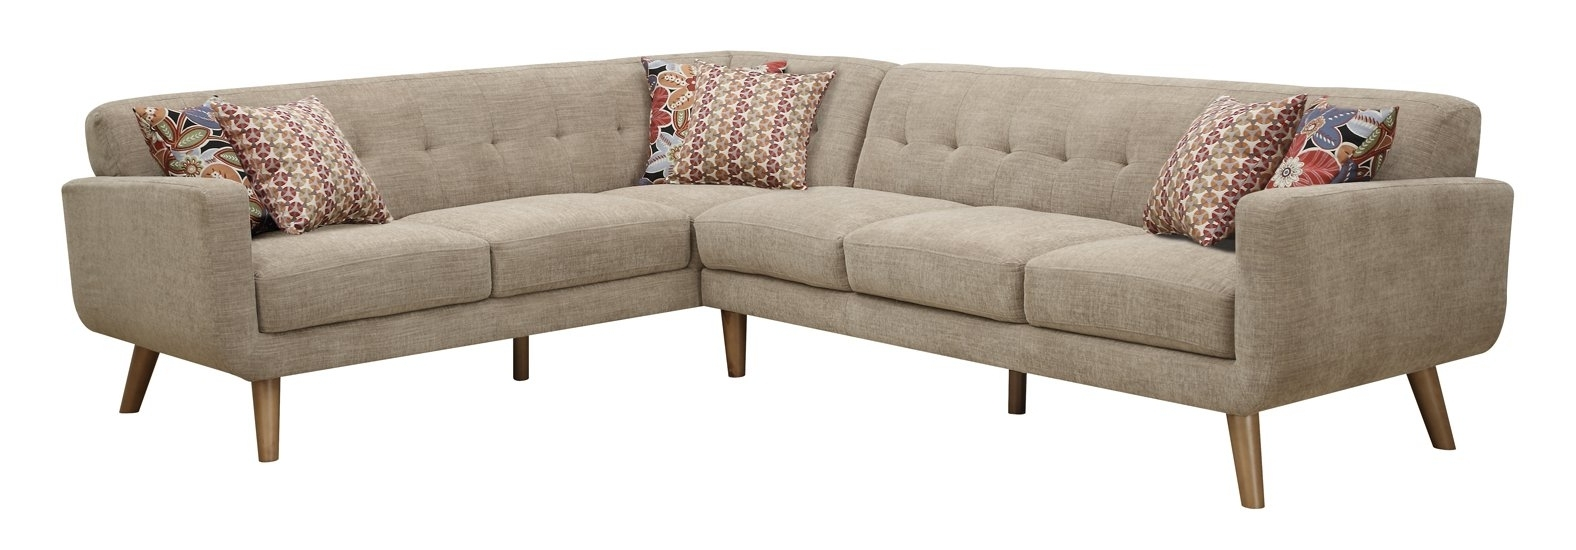 Joss & Main In Preferred Virginia Beach Sectional Sofas (View 20 of 20)